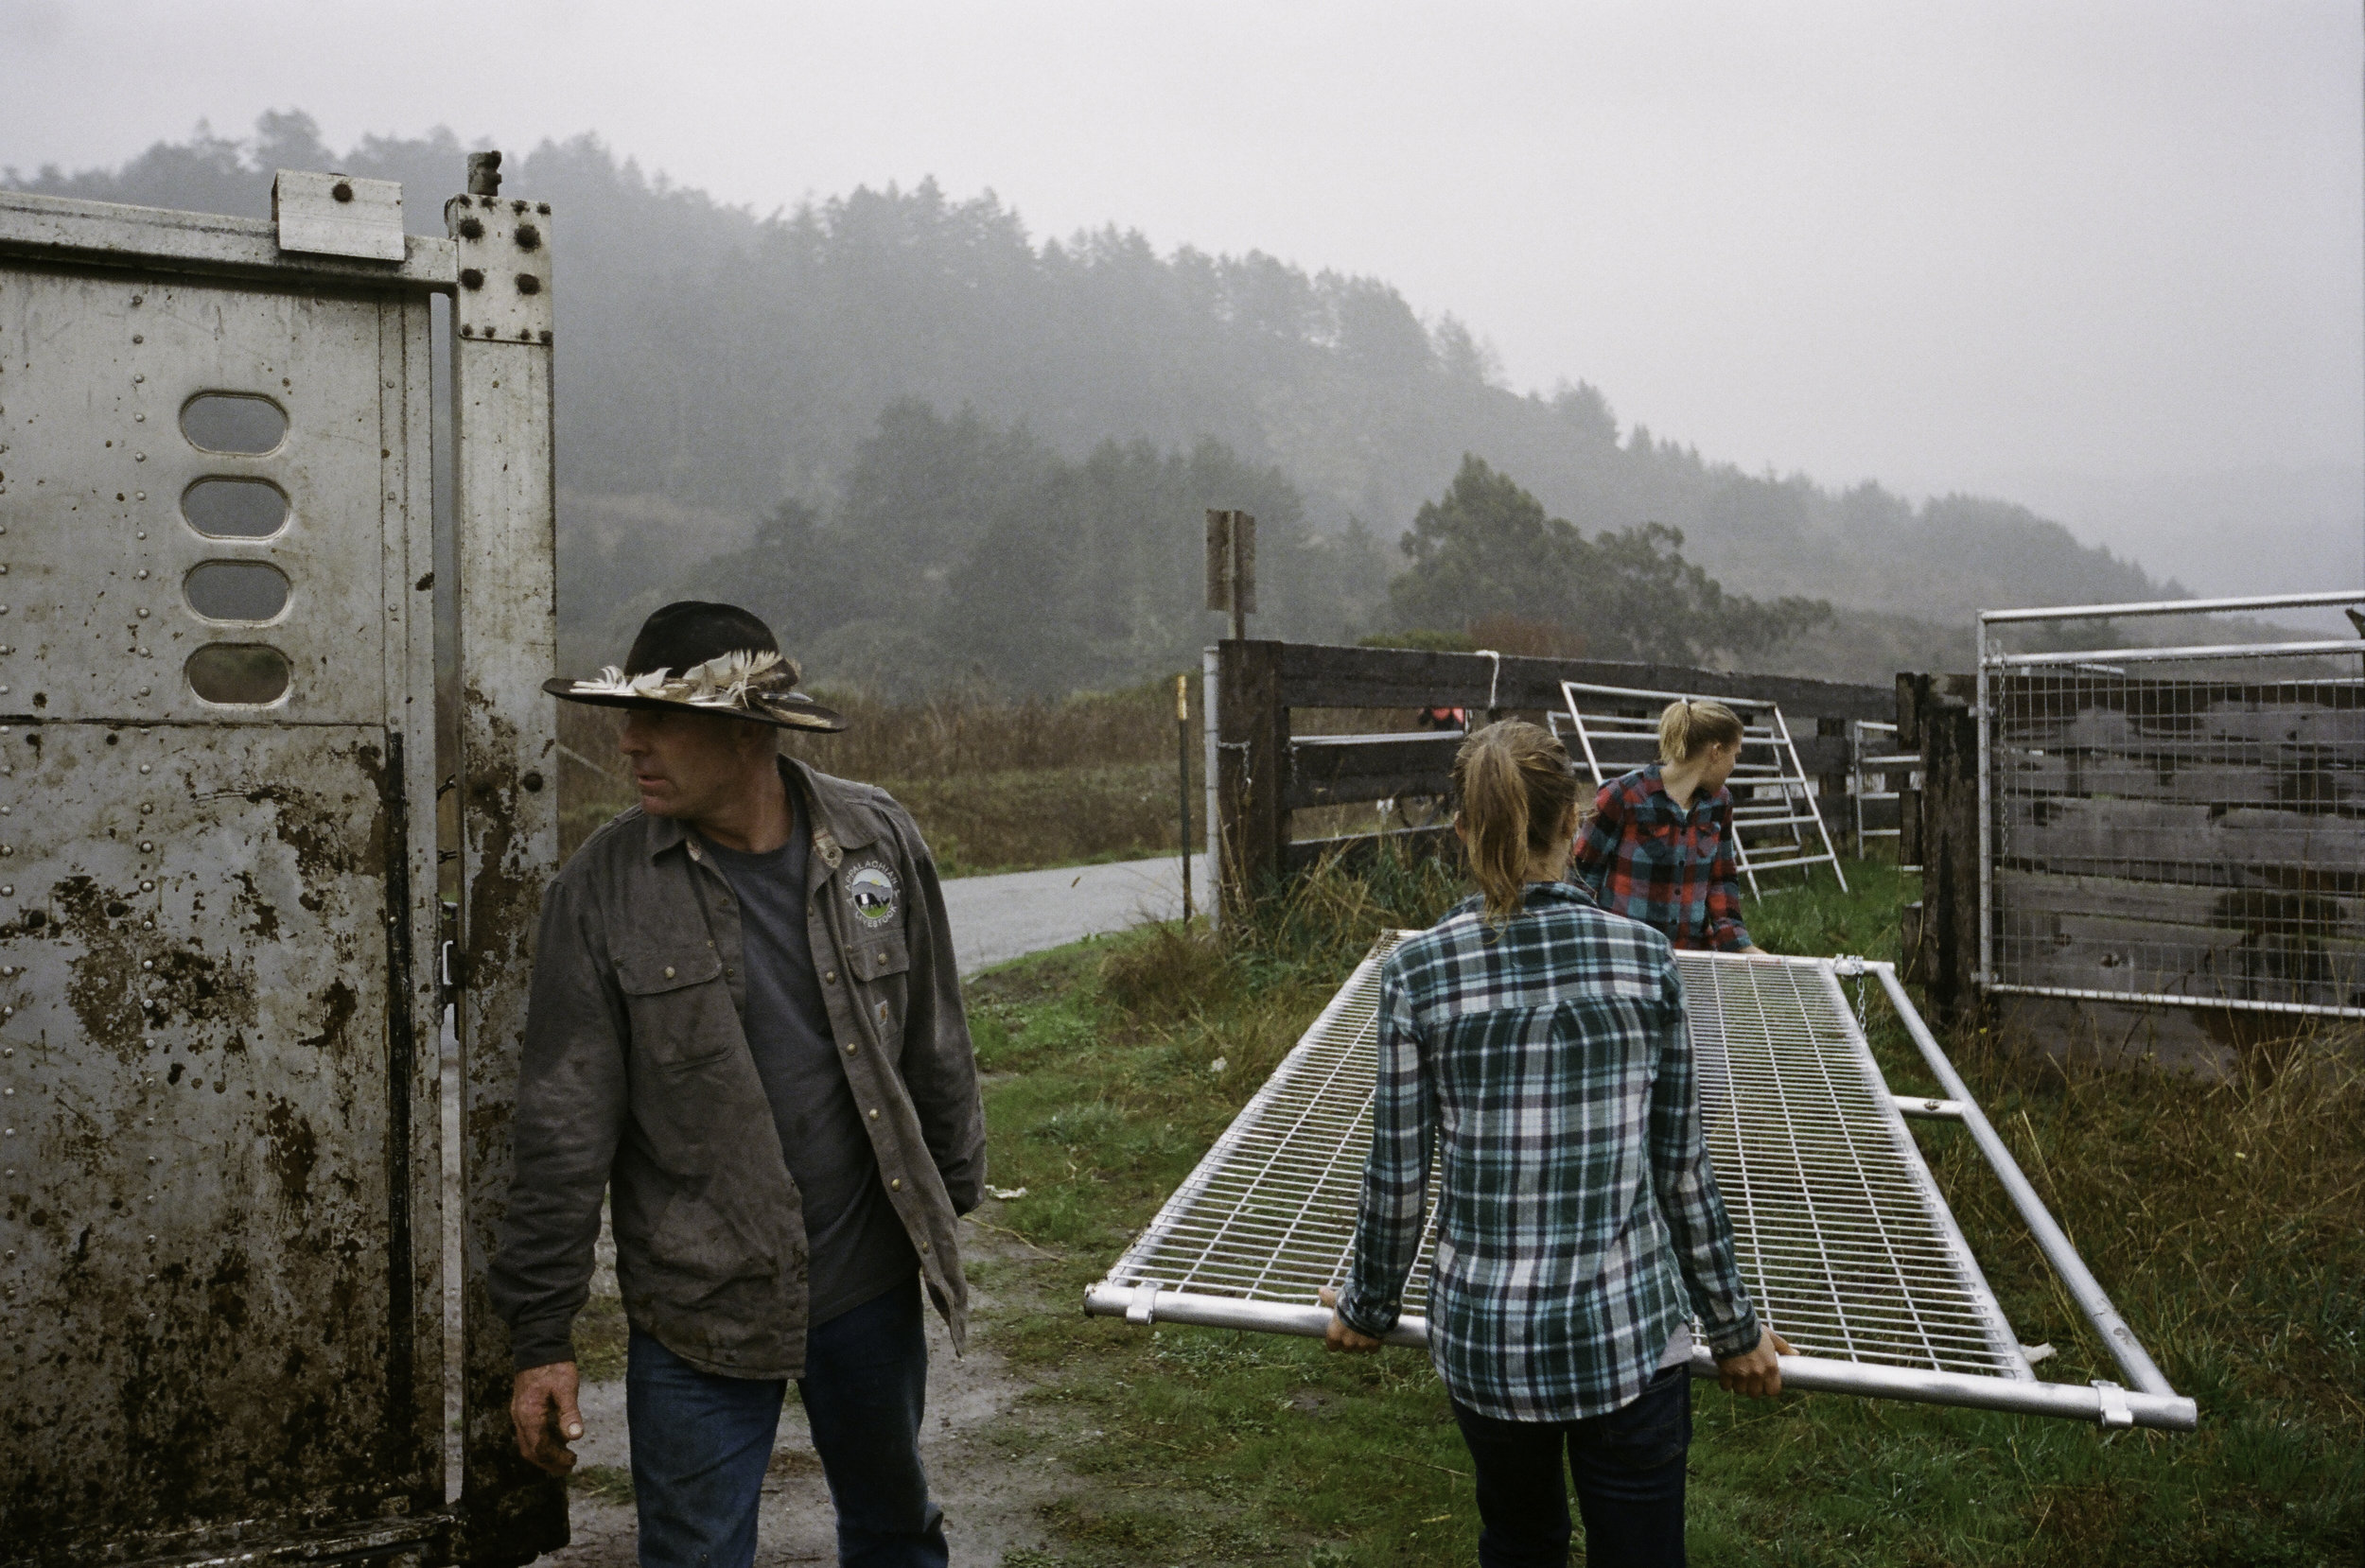 Erik, Johanna, and Ruth work to quickly unload fencing in the rain. - San Gregorio, CA